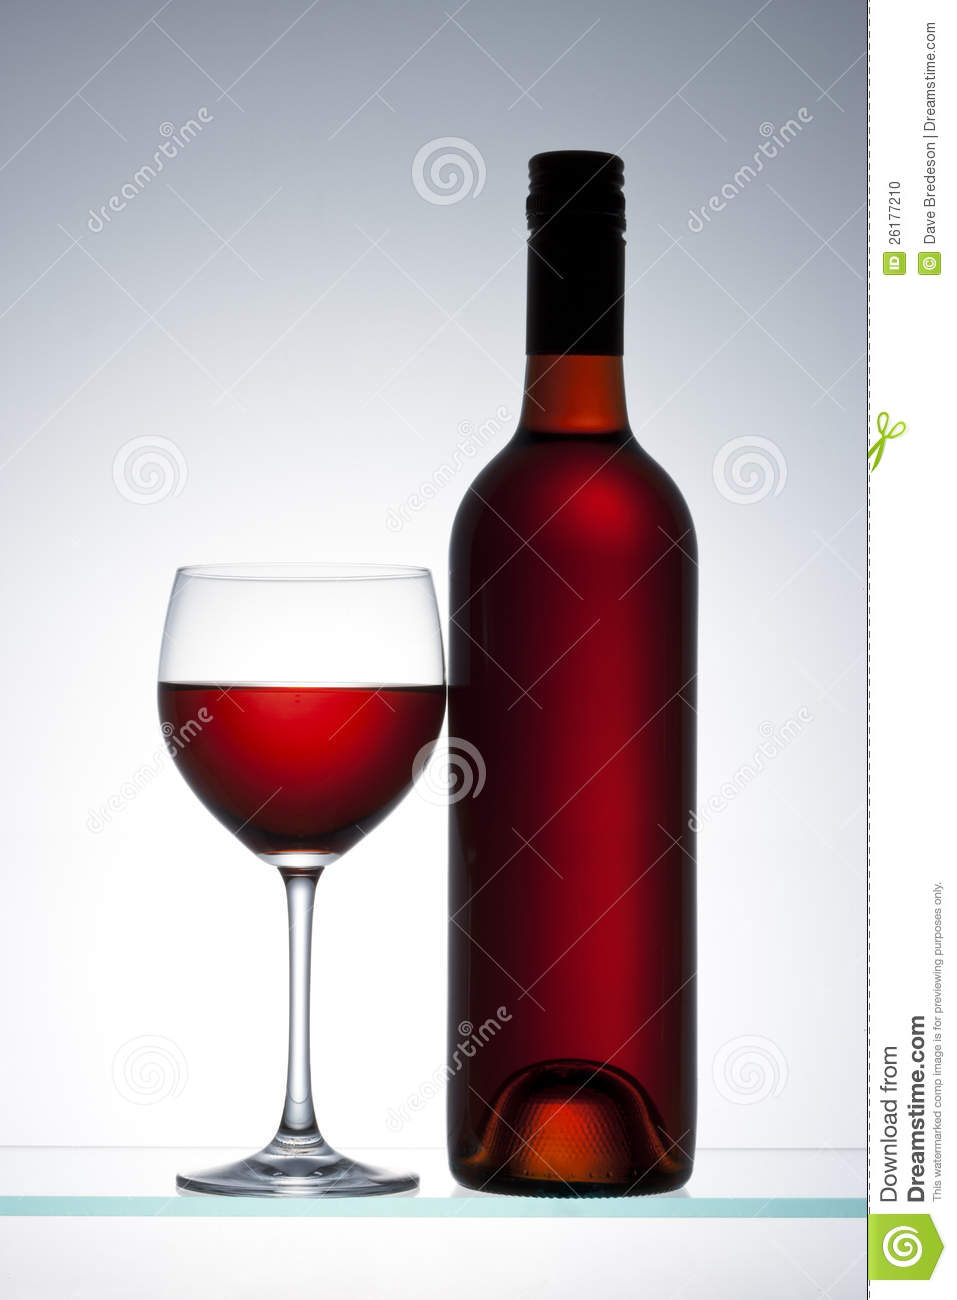 Red wine bottle glass stock photo image 26177210 for Wine bottle glass